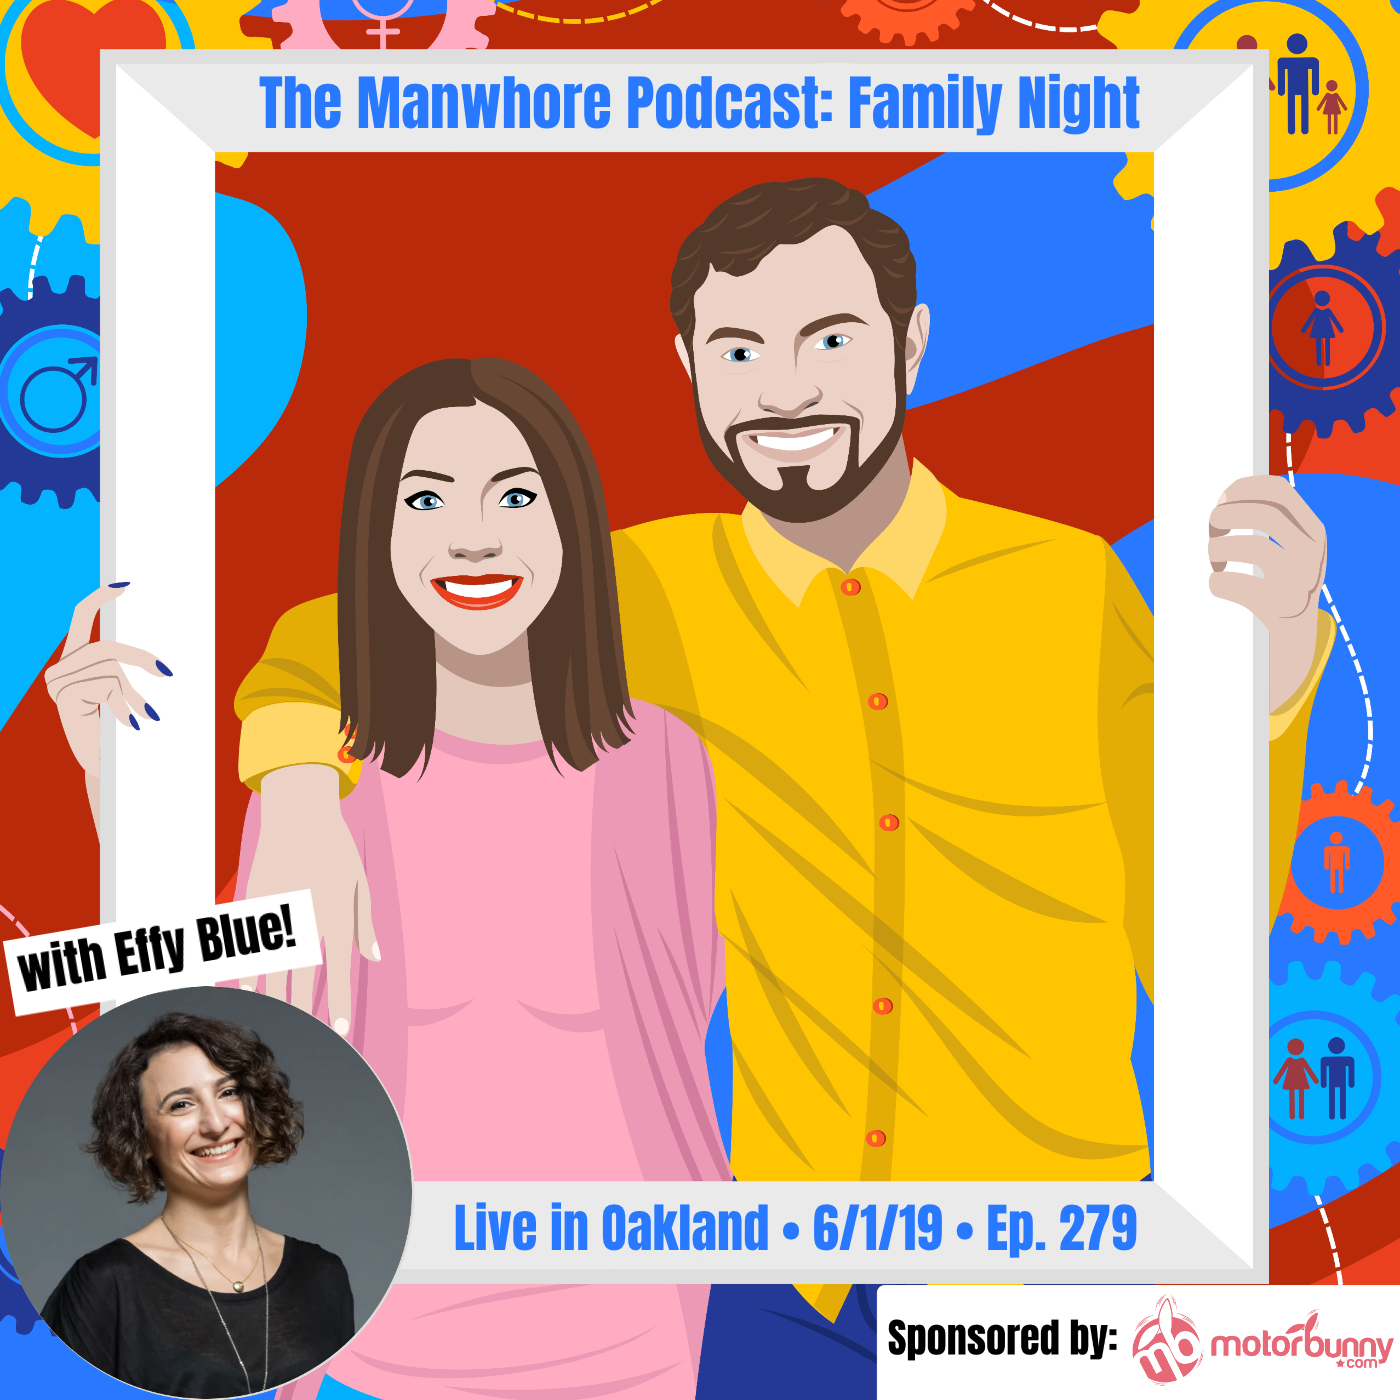 """The Manwhore Podcast: A Sex-Positive Quest - LIVE from Oakland: """"What's it like having a brother who lives his sex life on the internet?"""" (Ep. 279)"""